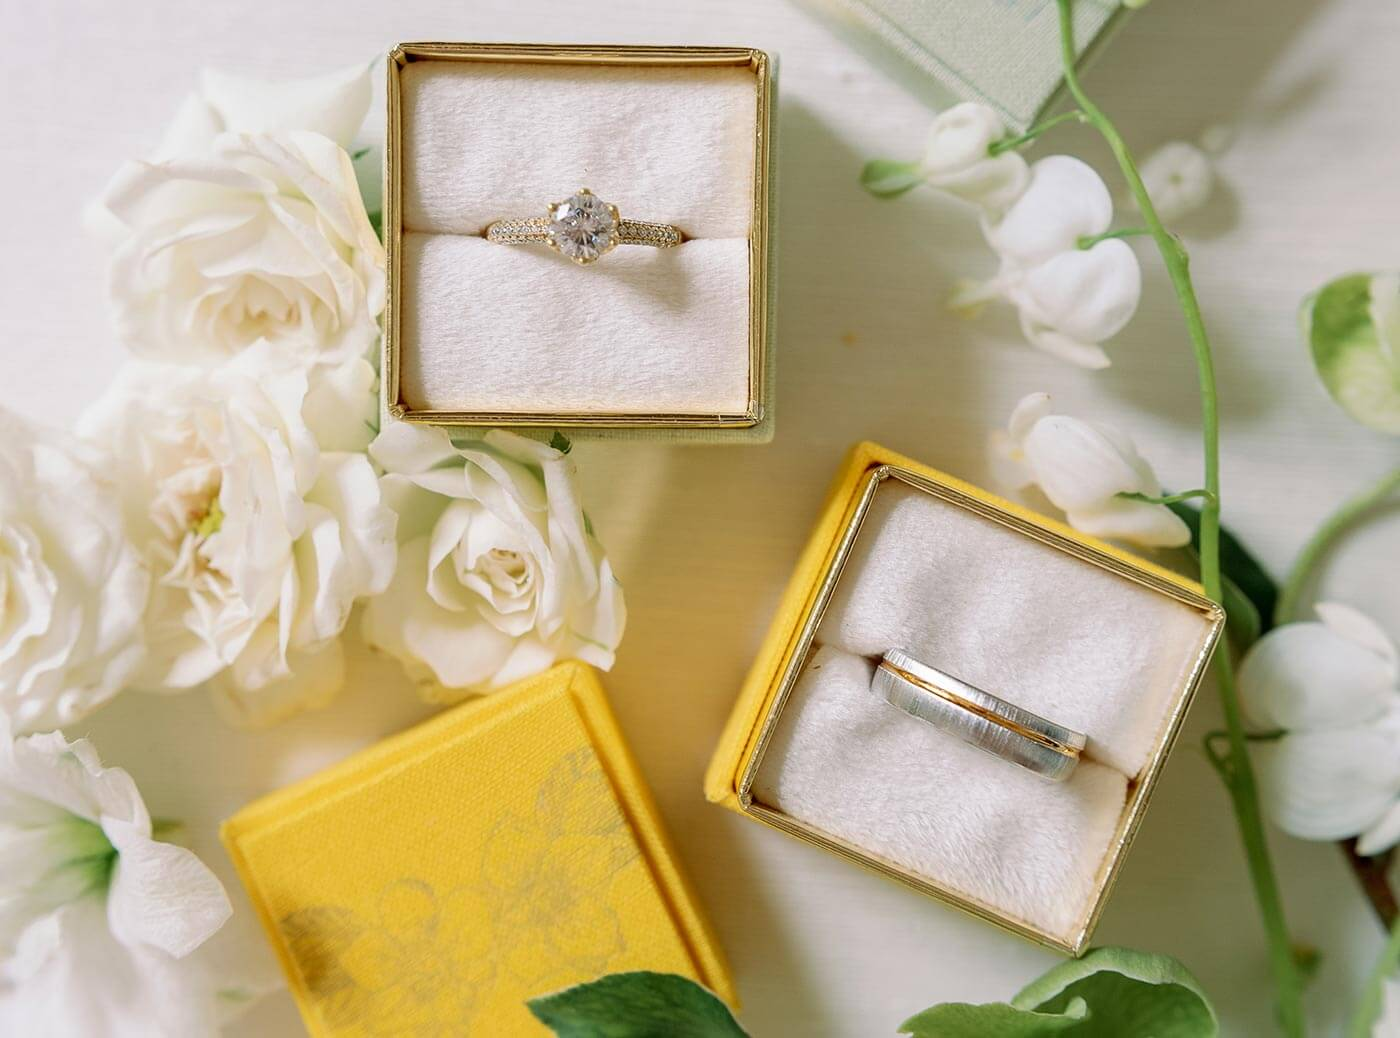 1632466668 385 22 charming rings at a glance - 22 charming rings at a glance